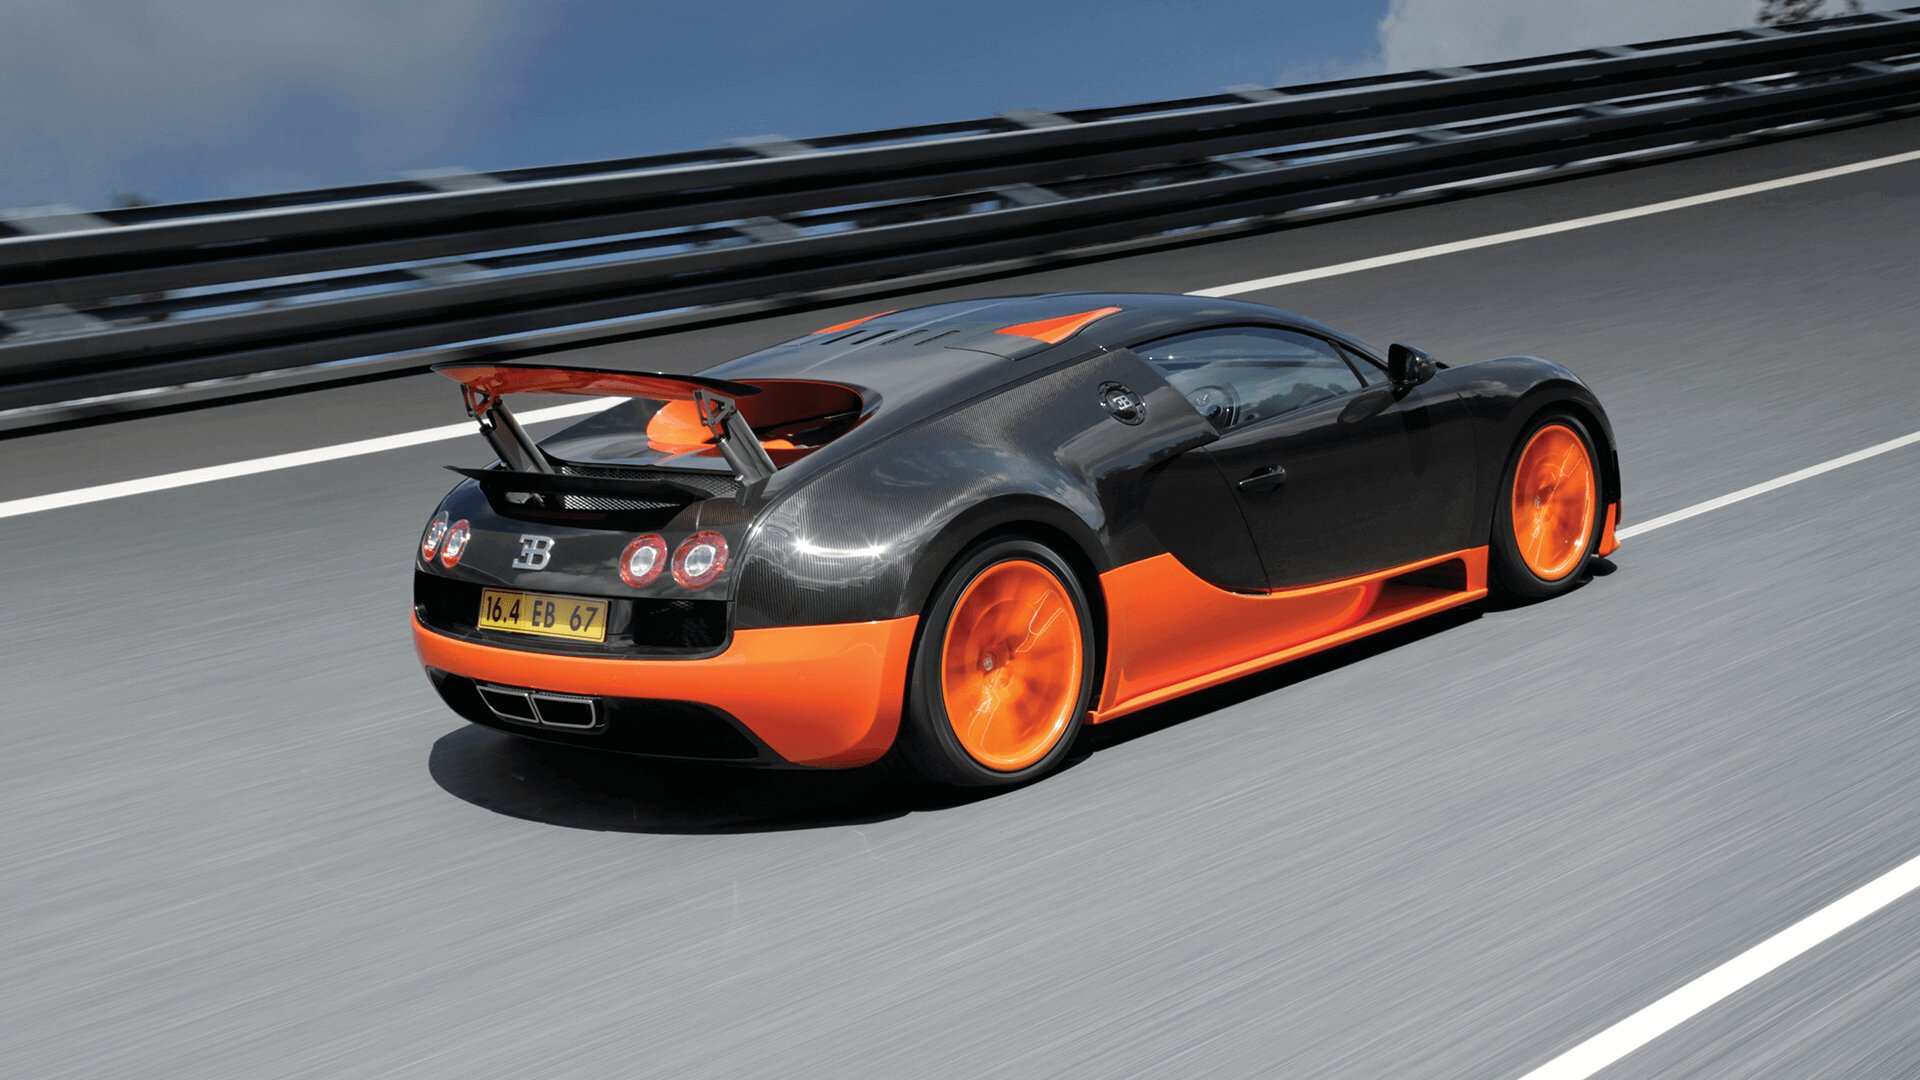 How much does the bugatti veyron super sport cost